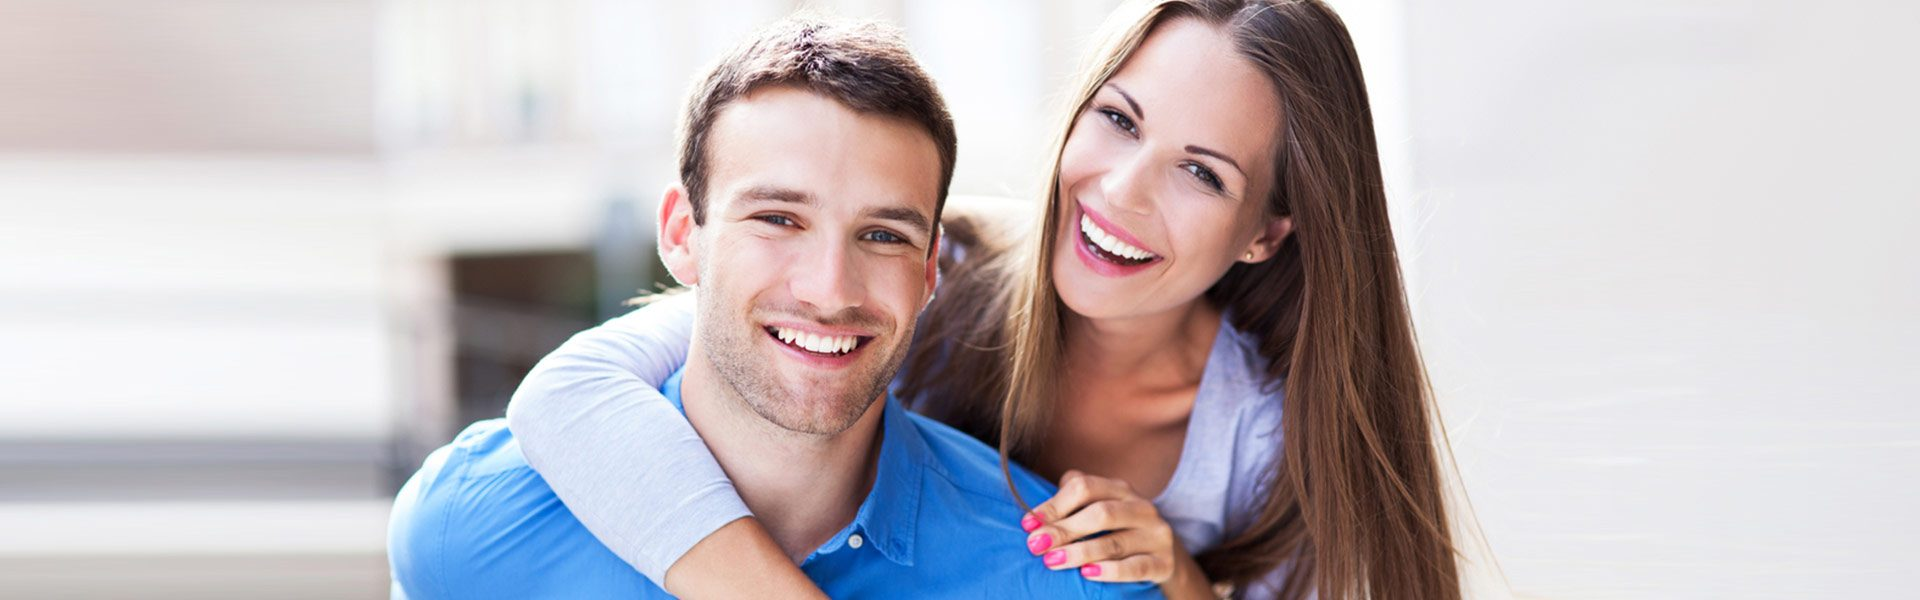 What are the Benefits of a Smile Makeover?